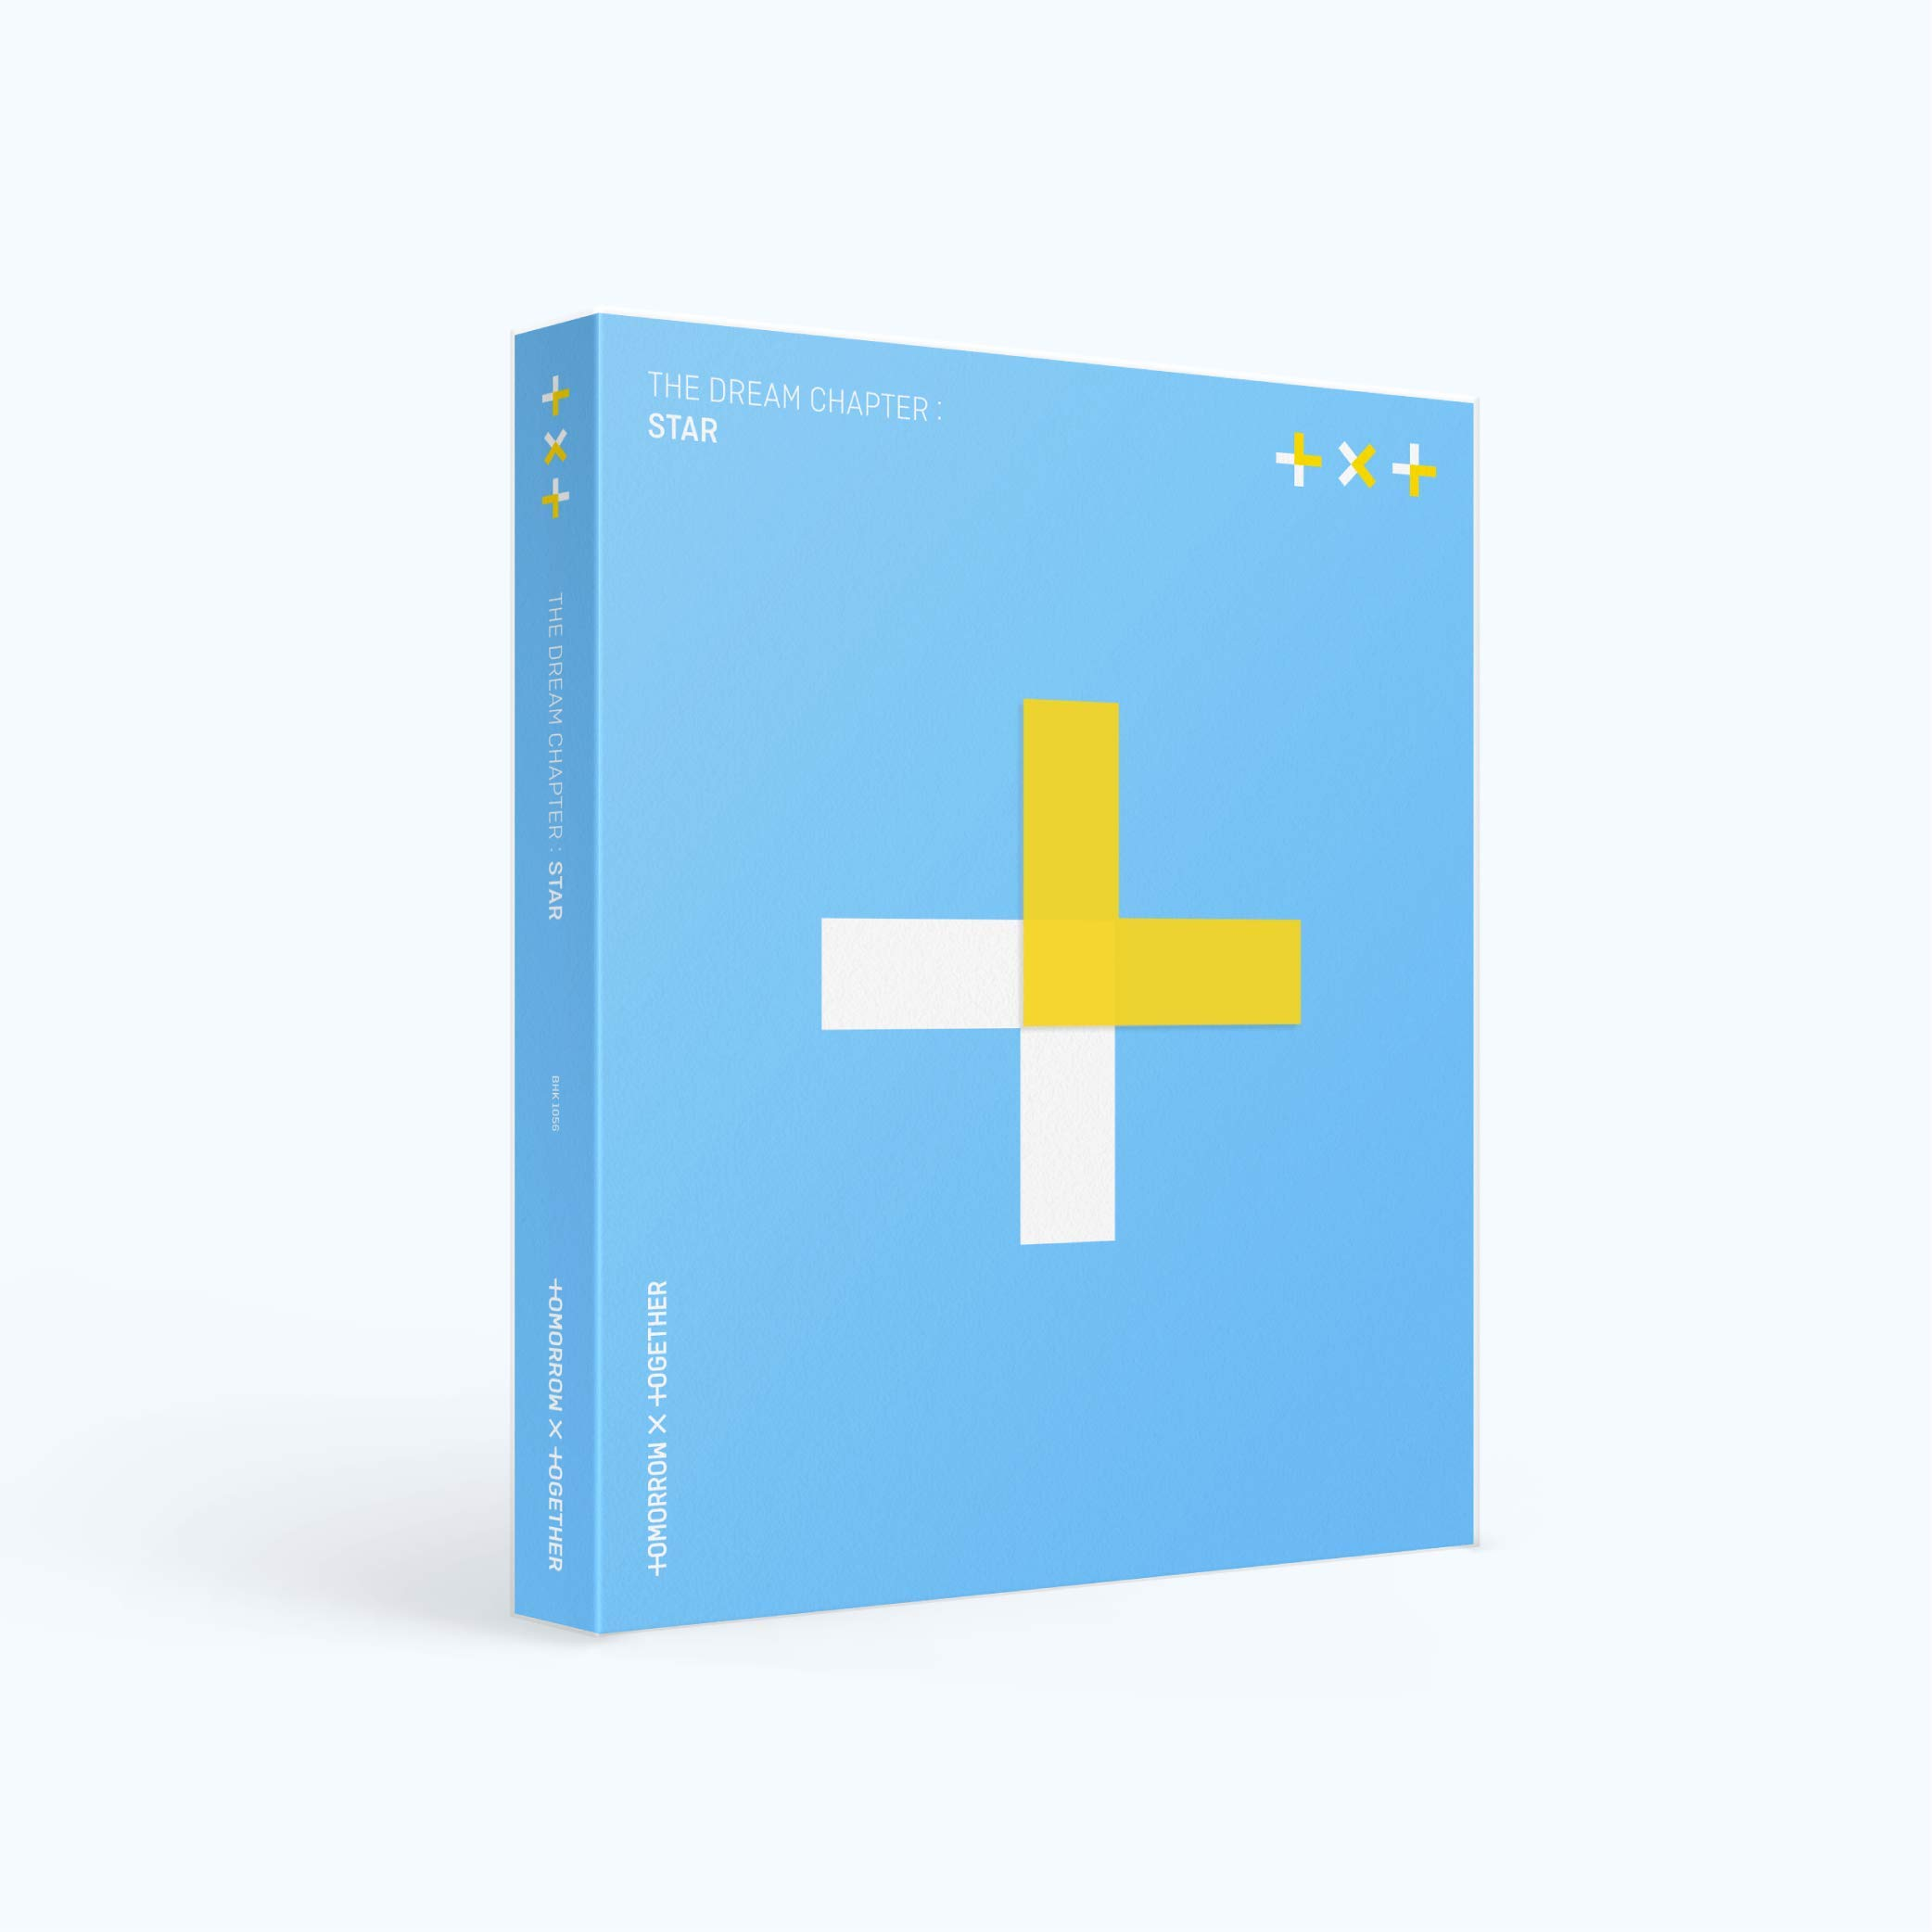 Bighit TXT Tomorrow X Together - THE DREAM CHAPTER : STAR (Debut Album) 1CD+Photobook+2Photocards+1Transparent Photocard+Sticker Pack+Folded Poster+Extra Photocards Set